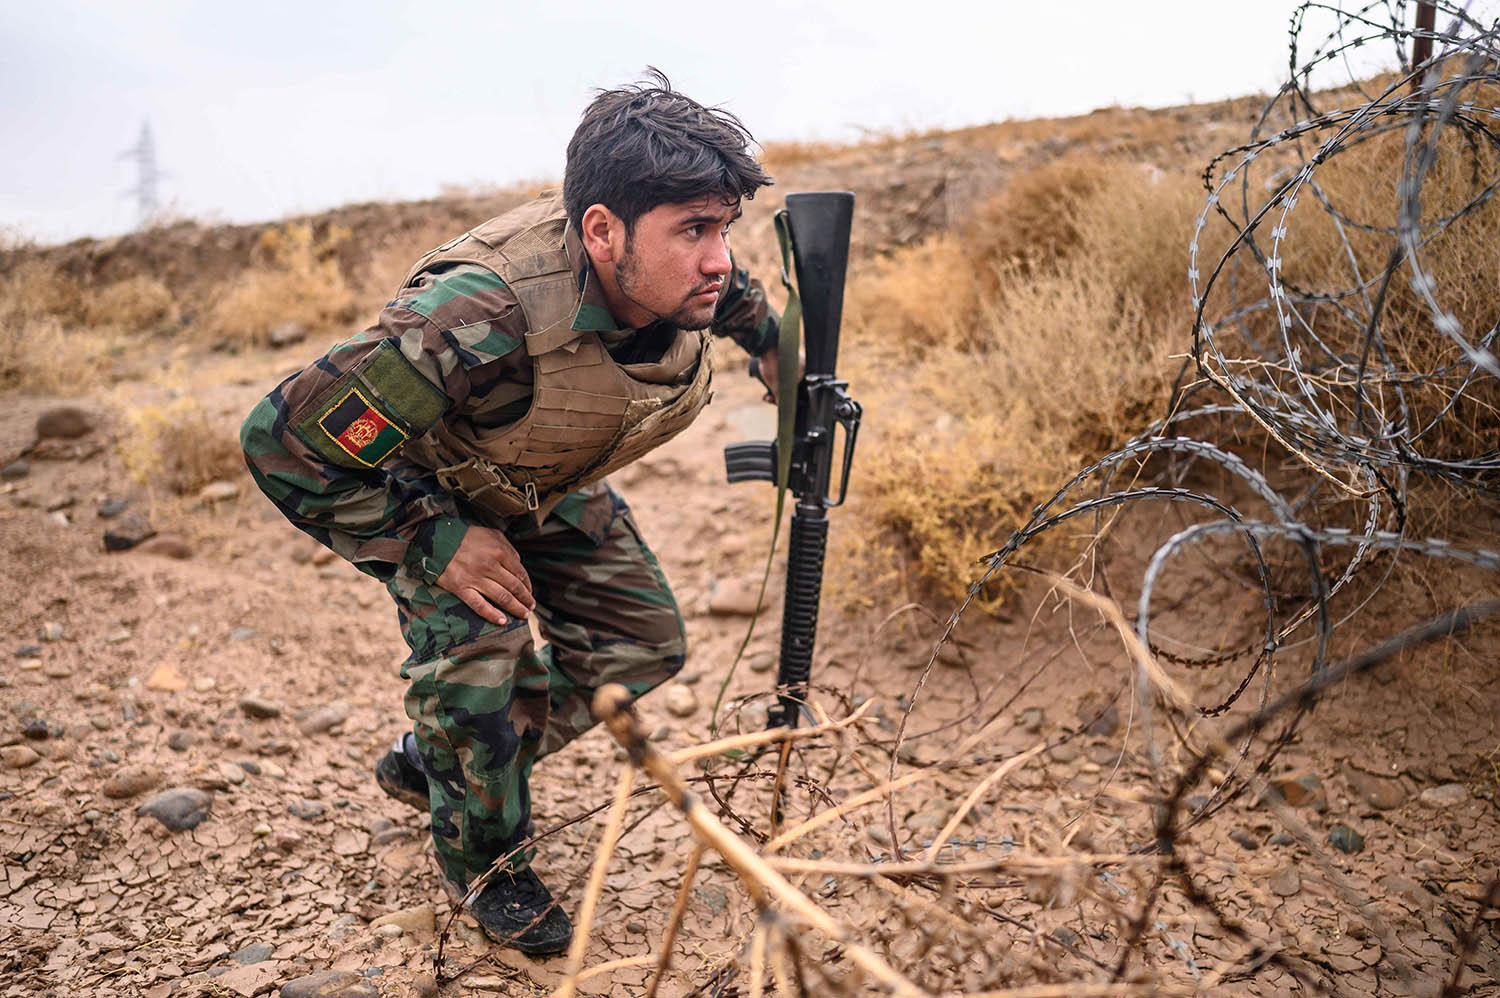 A young ANA soldier searches for Improvised Explosive Devices in a culvert beneath the main Lashkargah-Kandahar highway on Nov. 21, 2019. IEDs remain one of the most commonly employed weapons of the Taliban in this area.